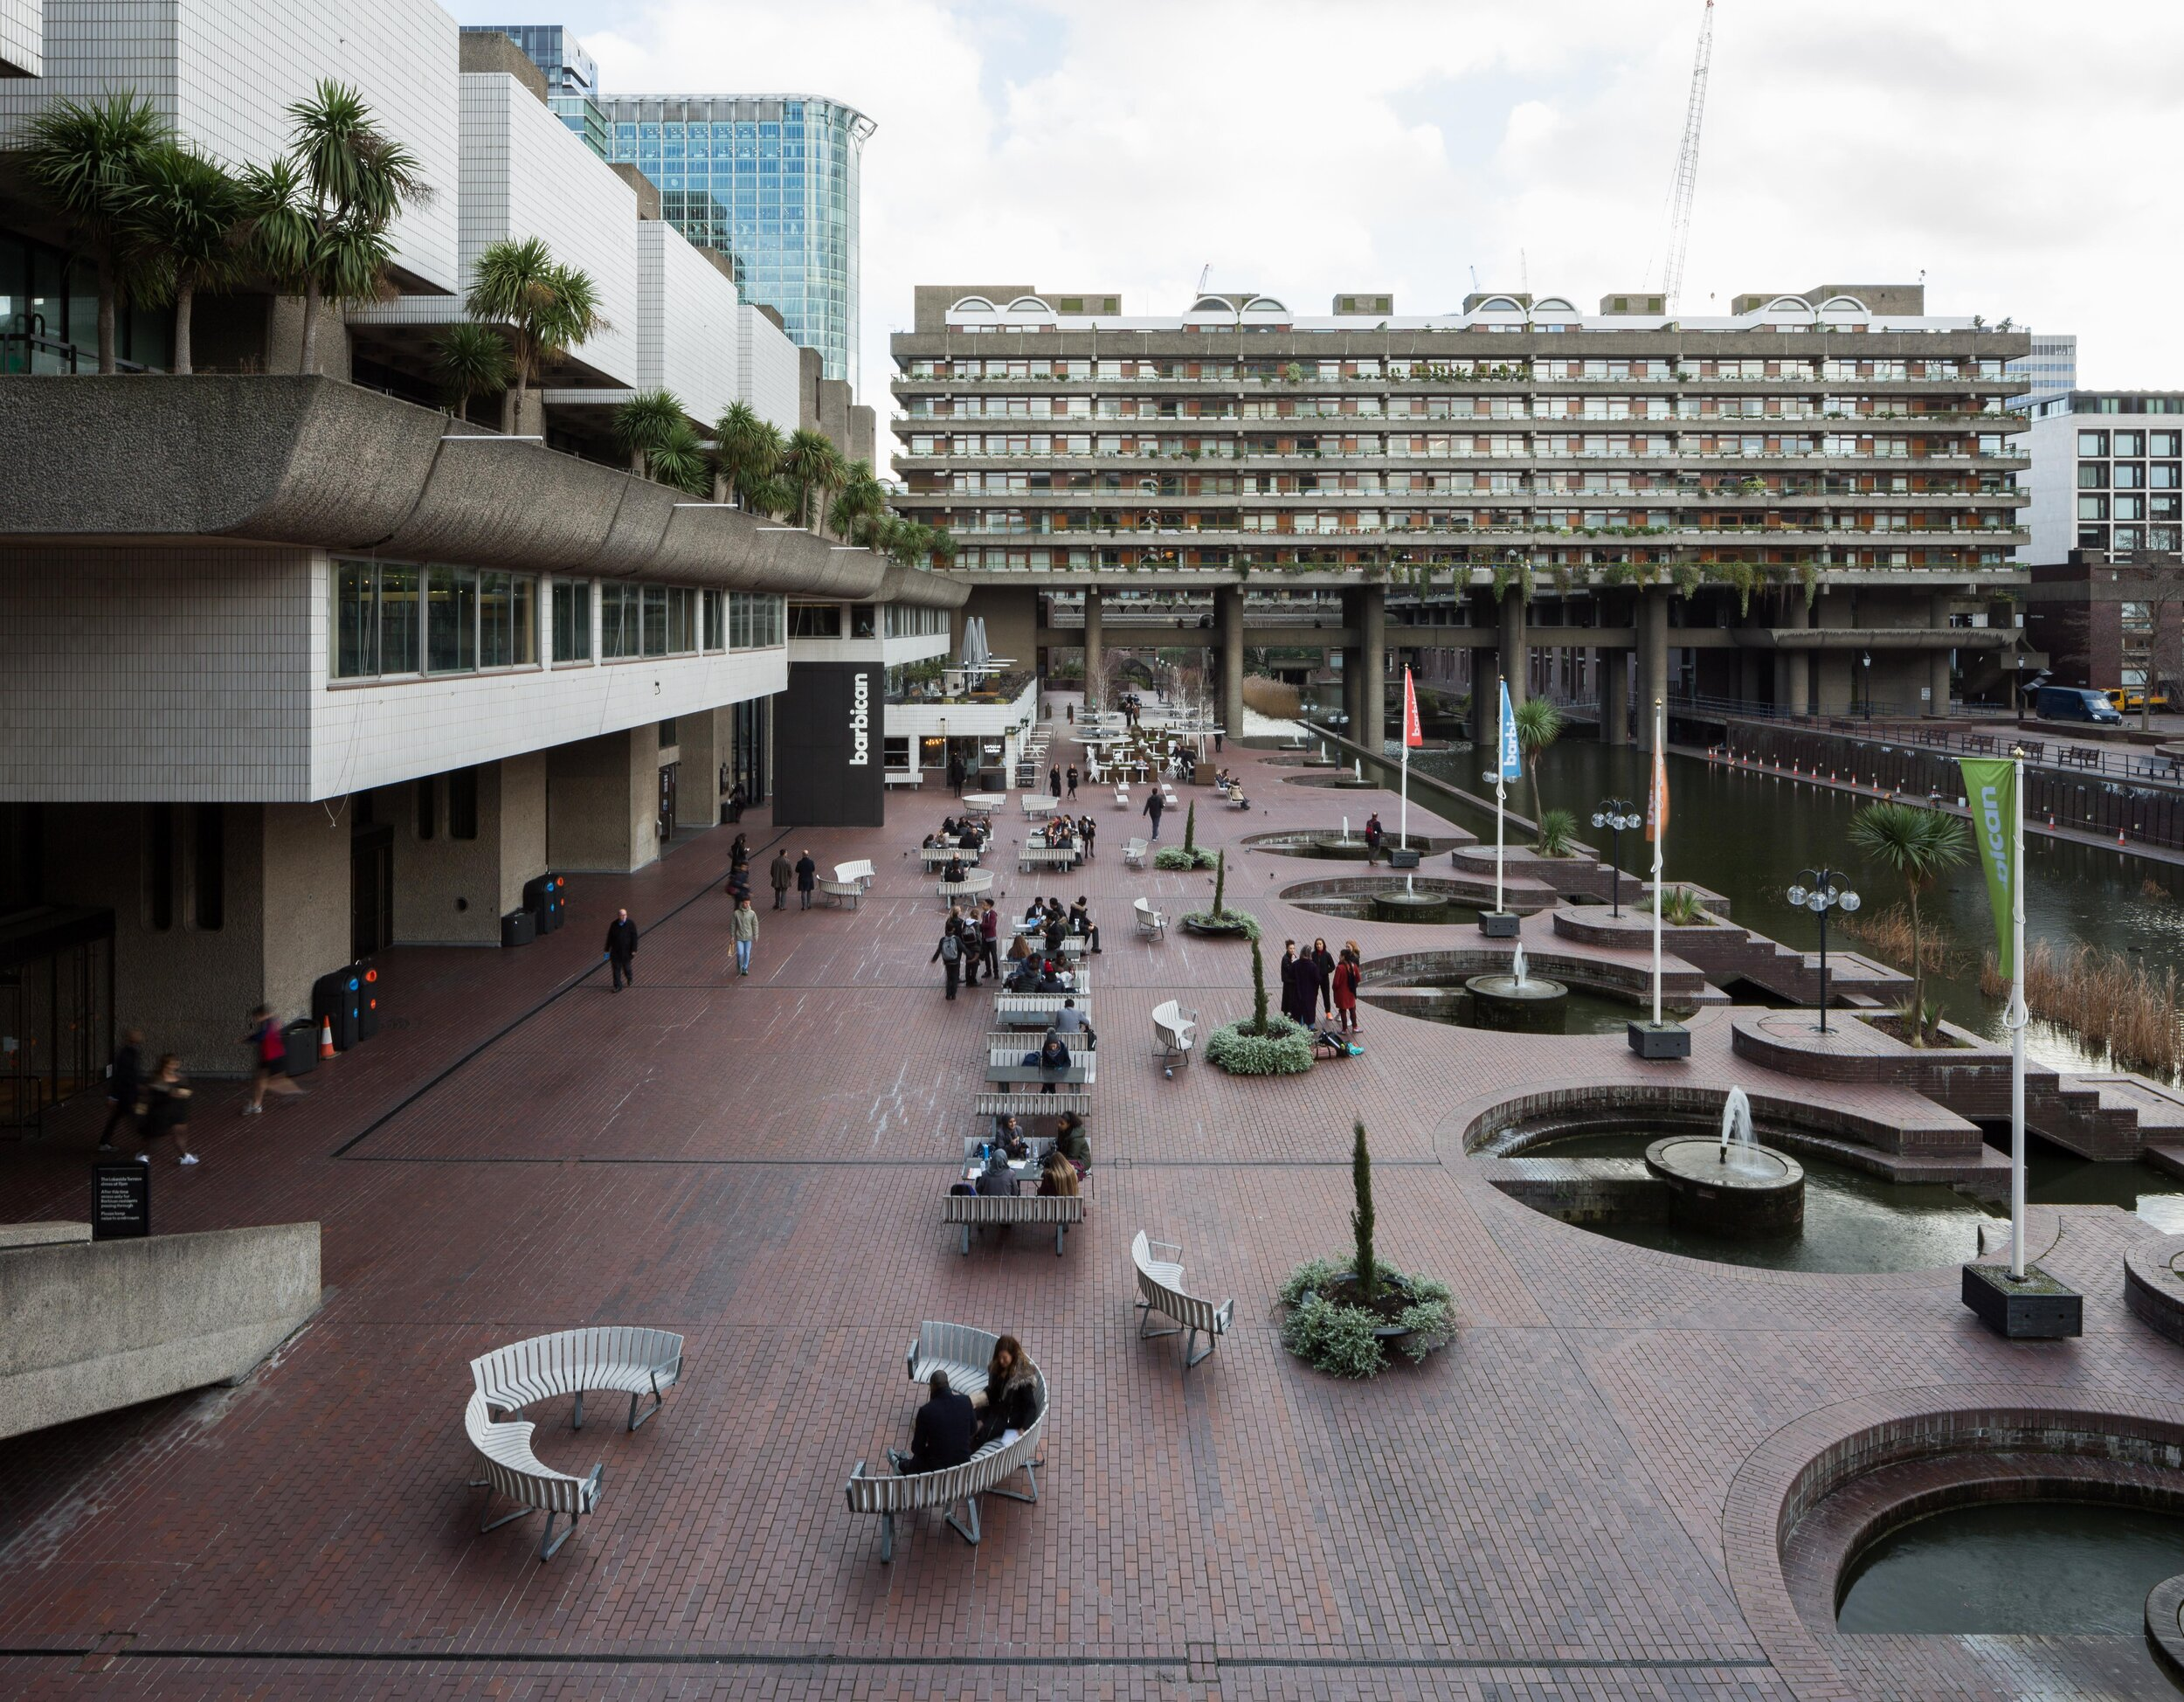 The Barbican Center 180125 319.jpg